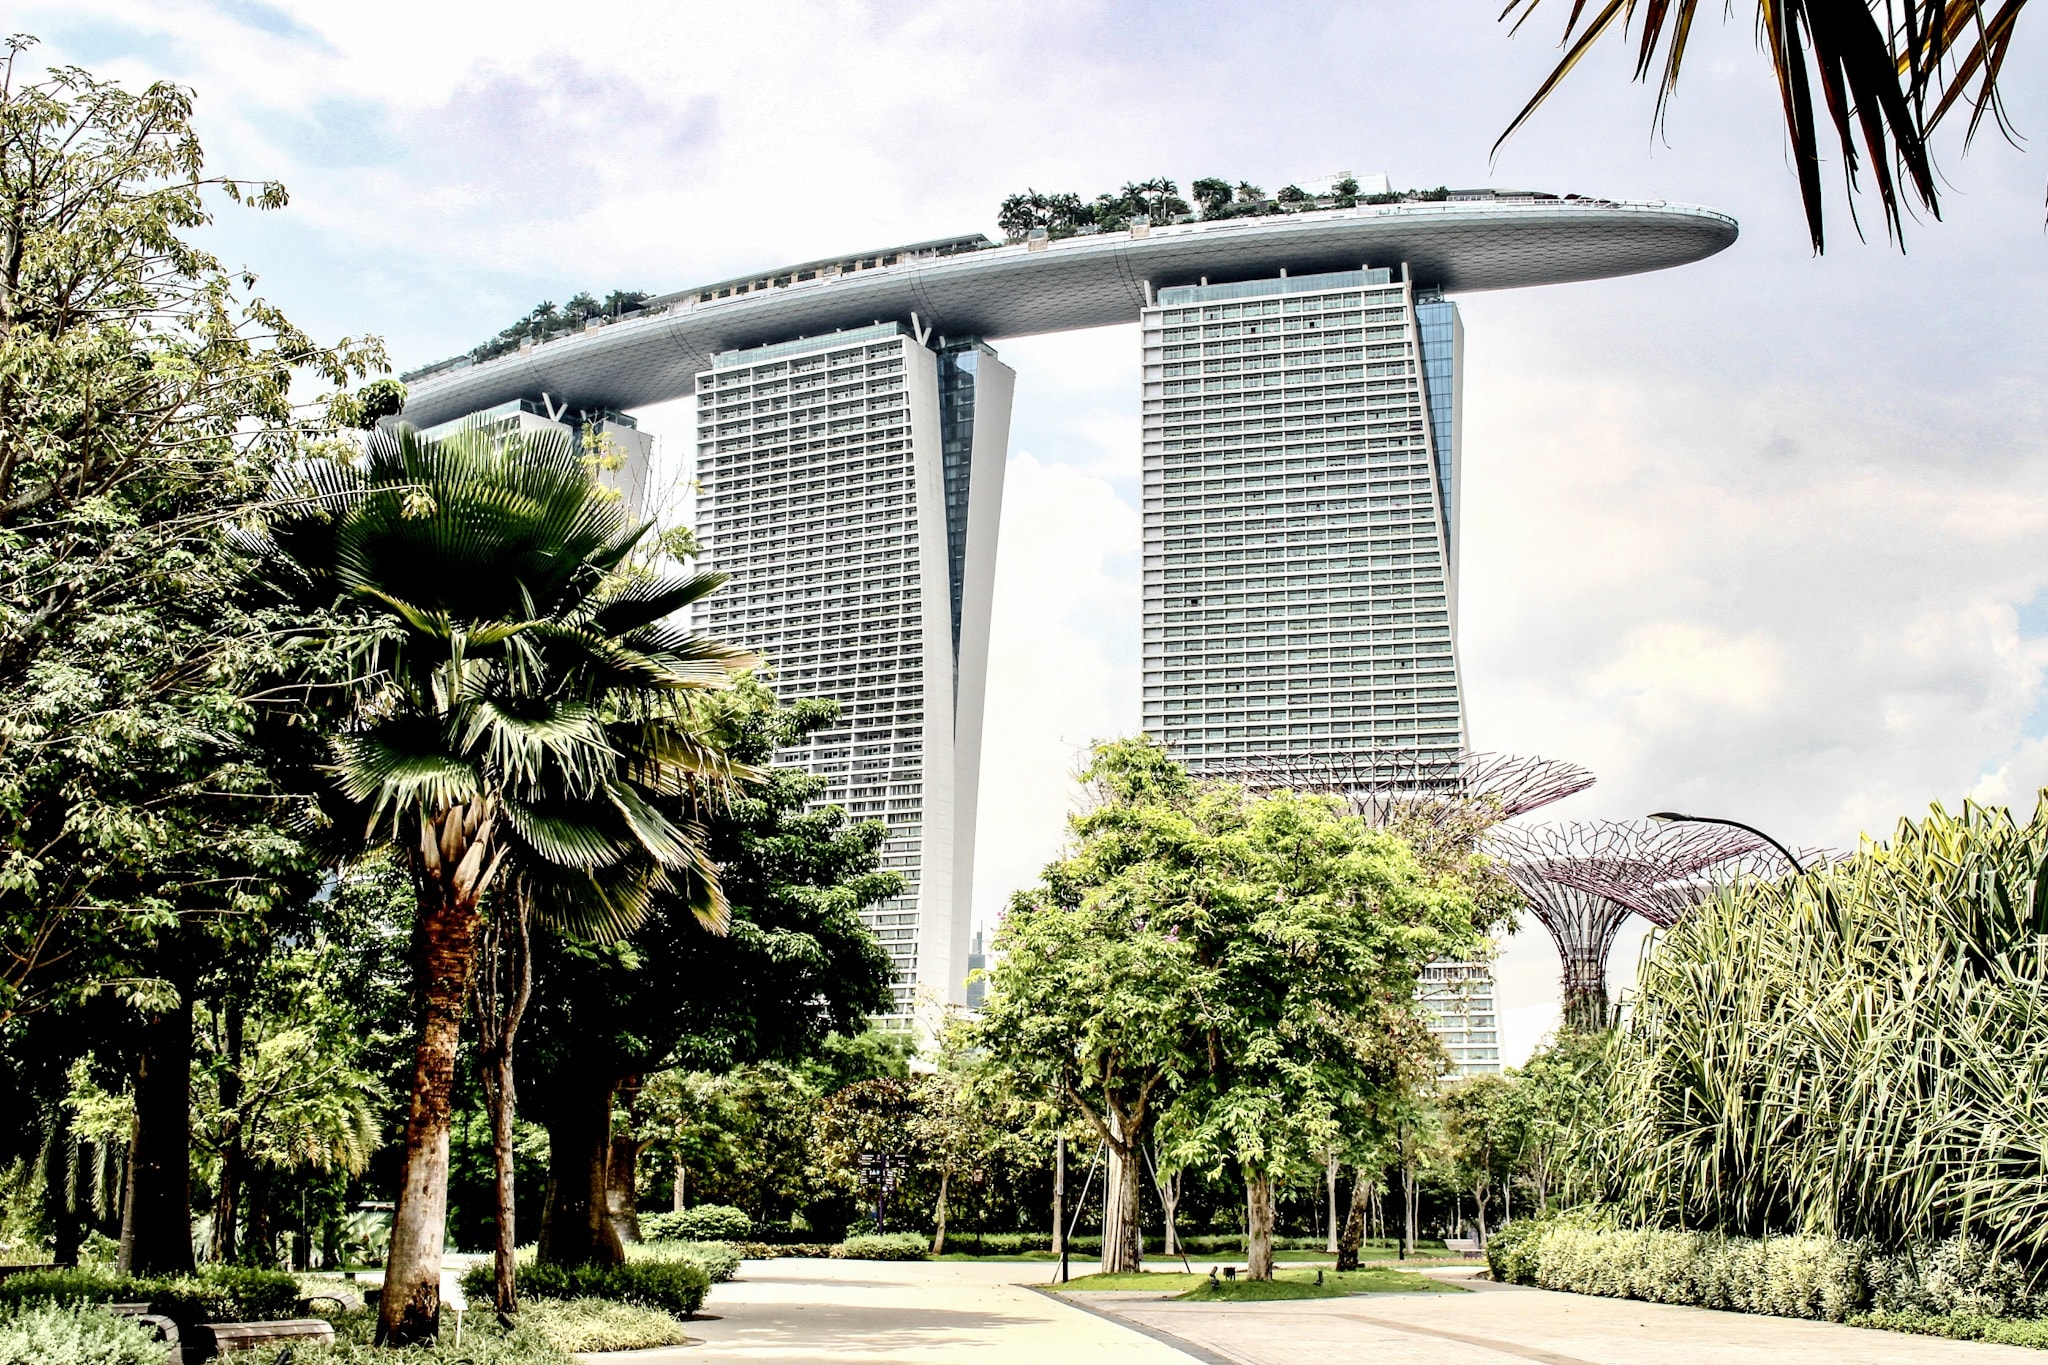 Singapur Low Budget - Marina Bay Sands.